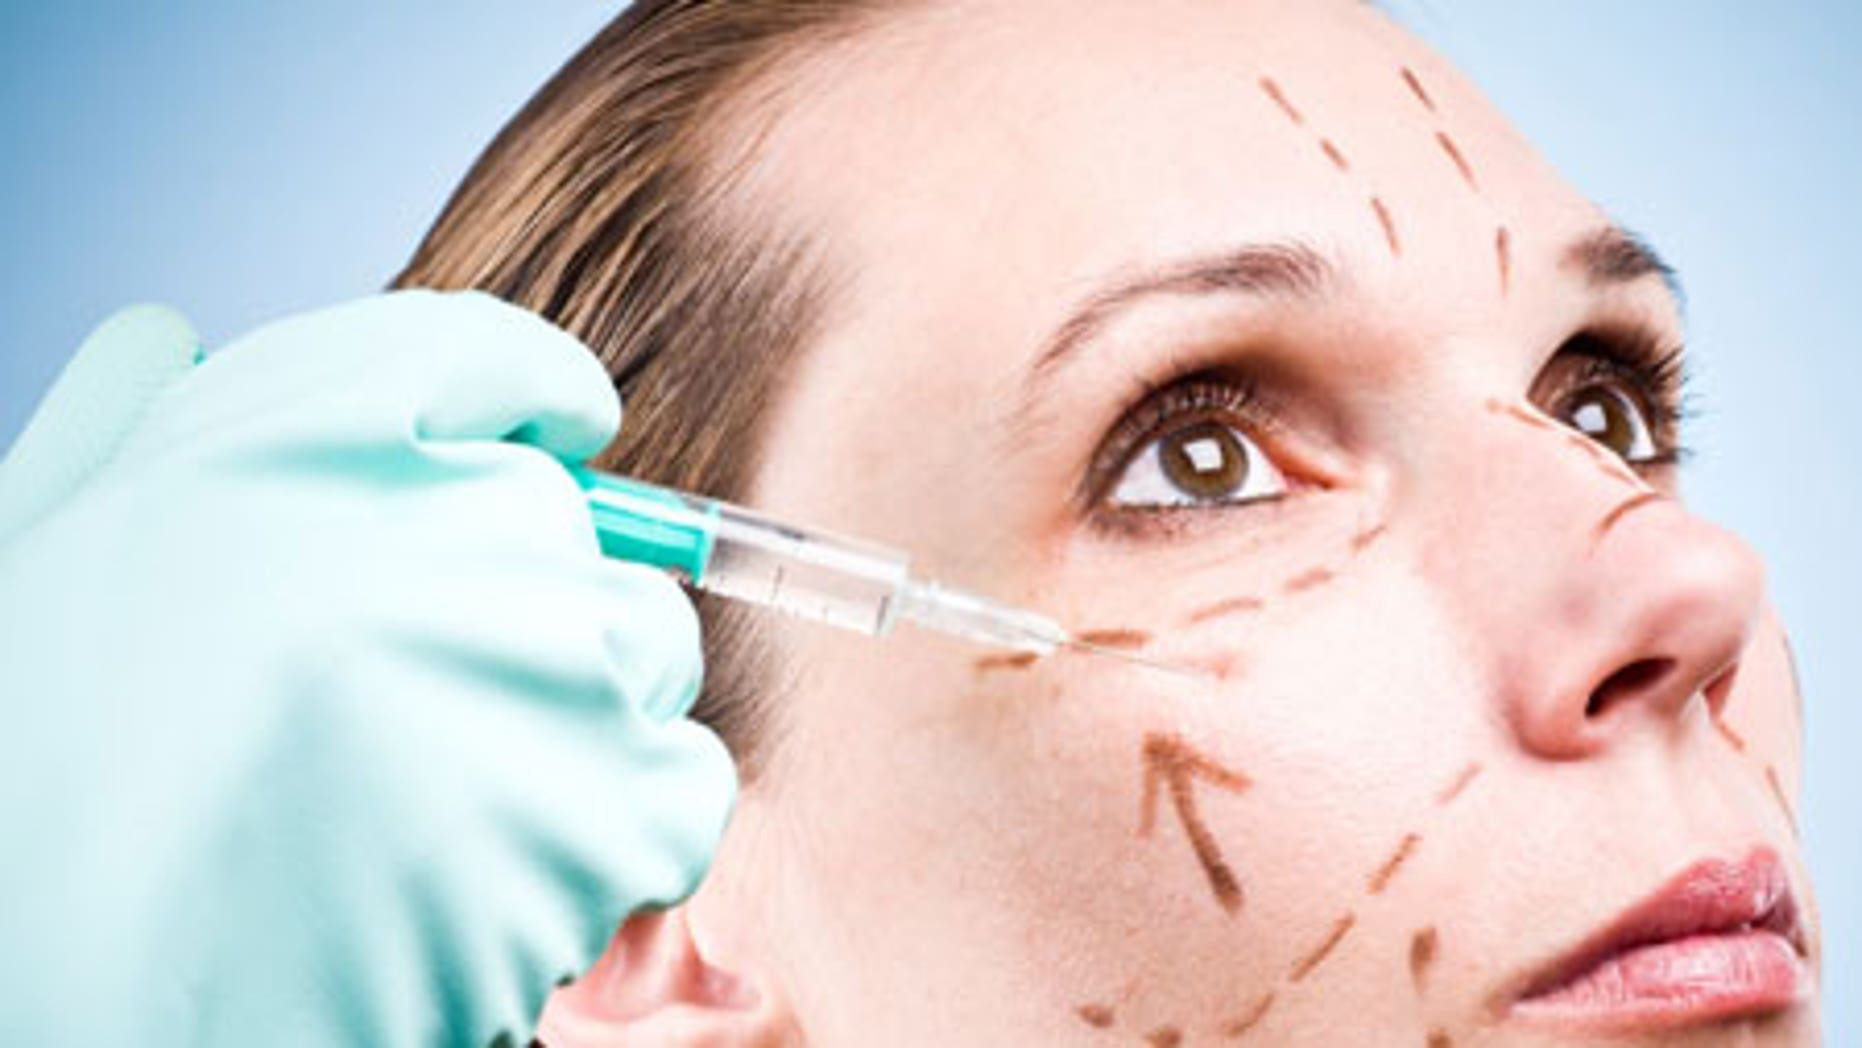 6 Crazy Things Plastic Surgeons Have Seen